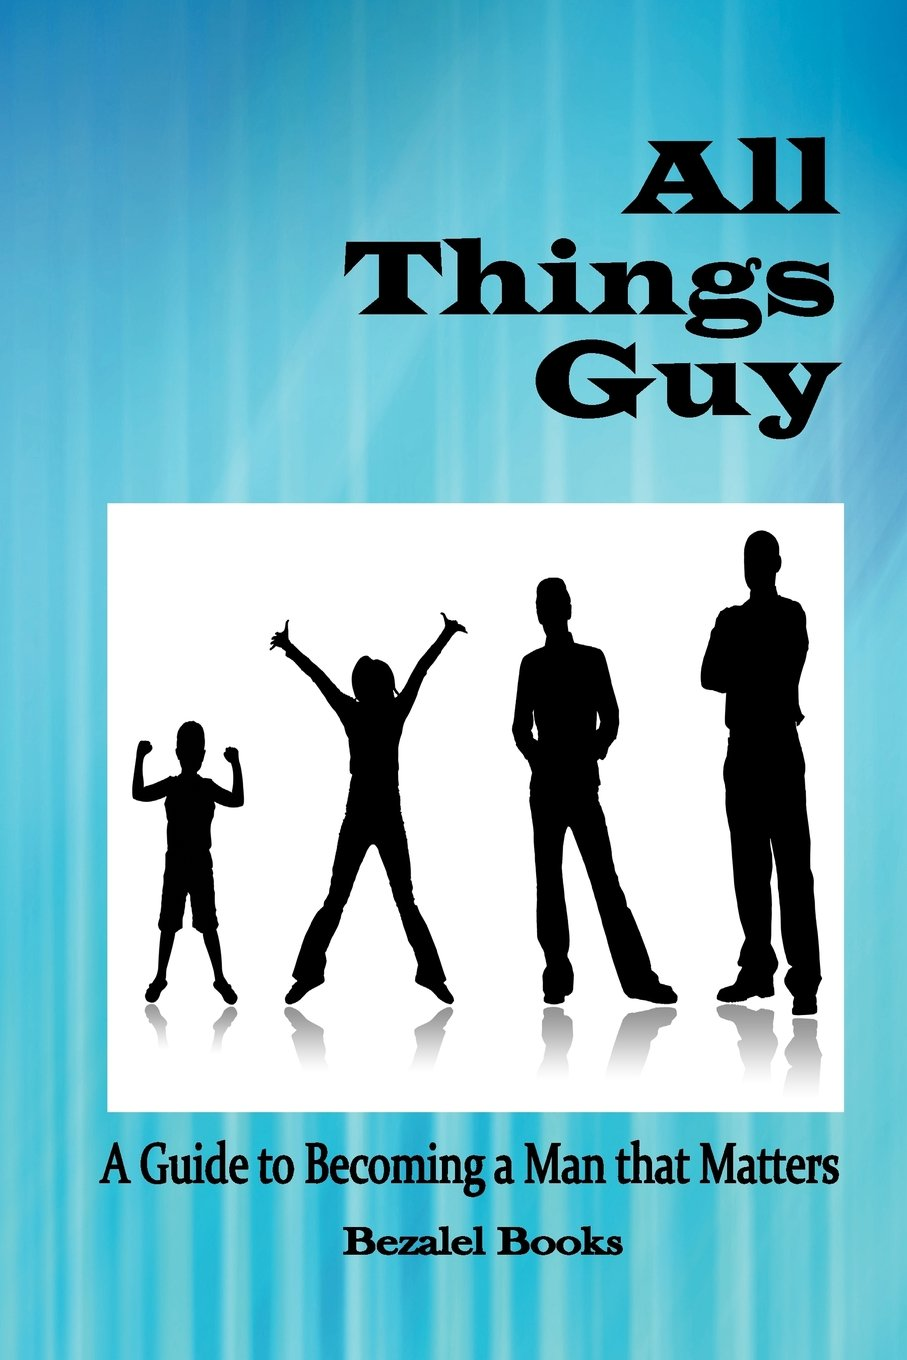 All Things Guy Becoming Matters